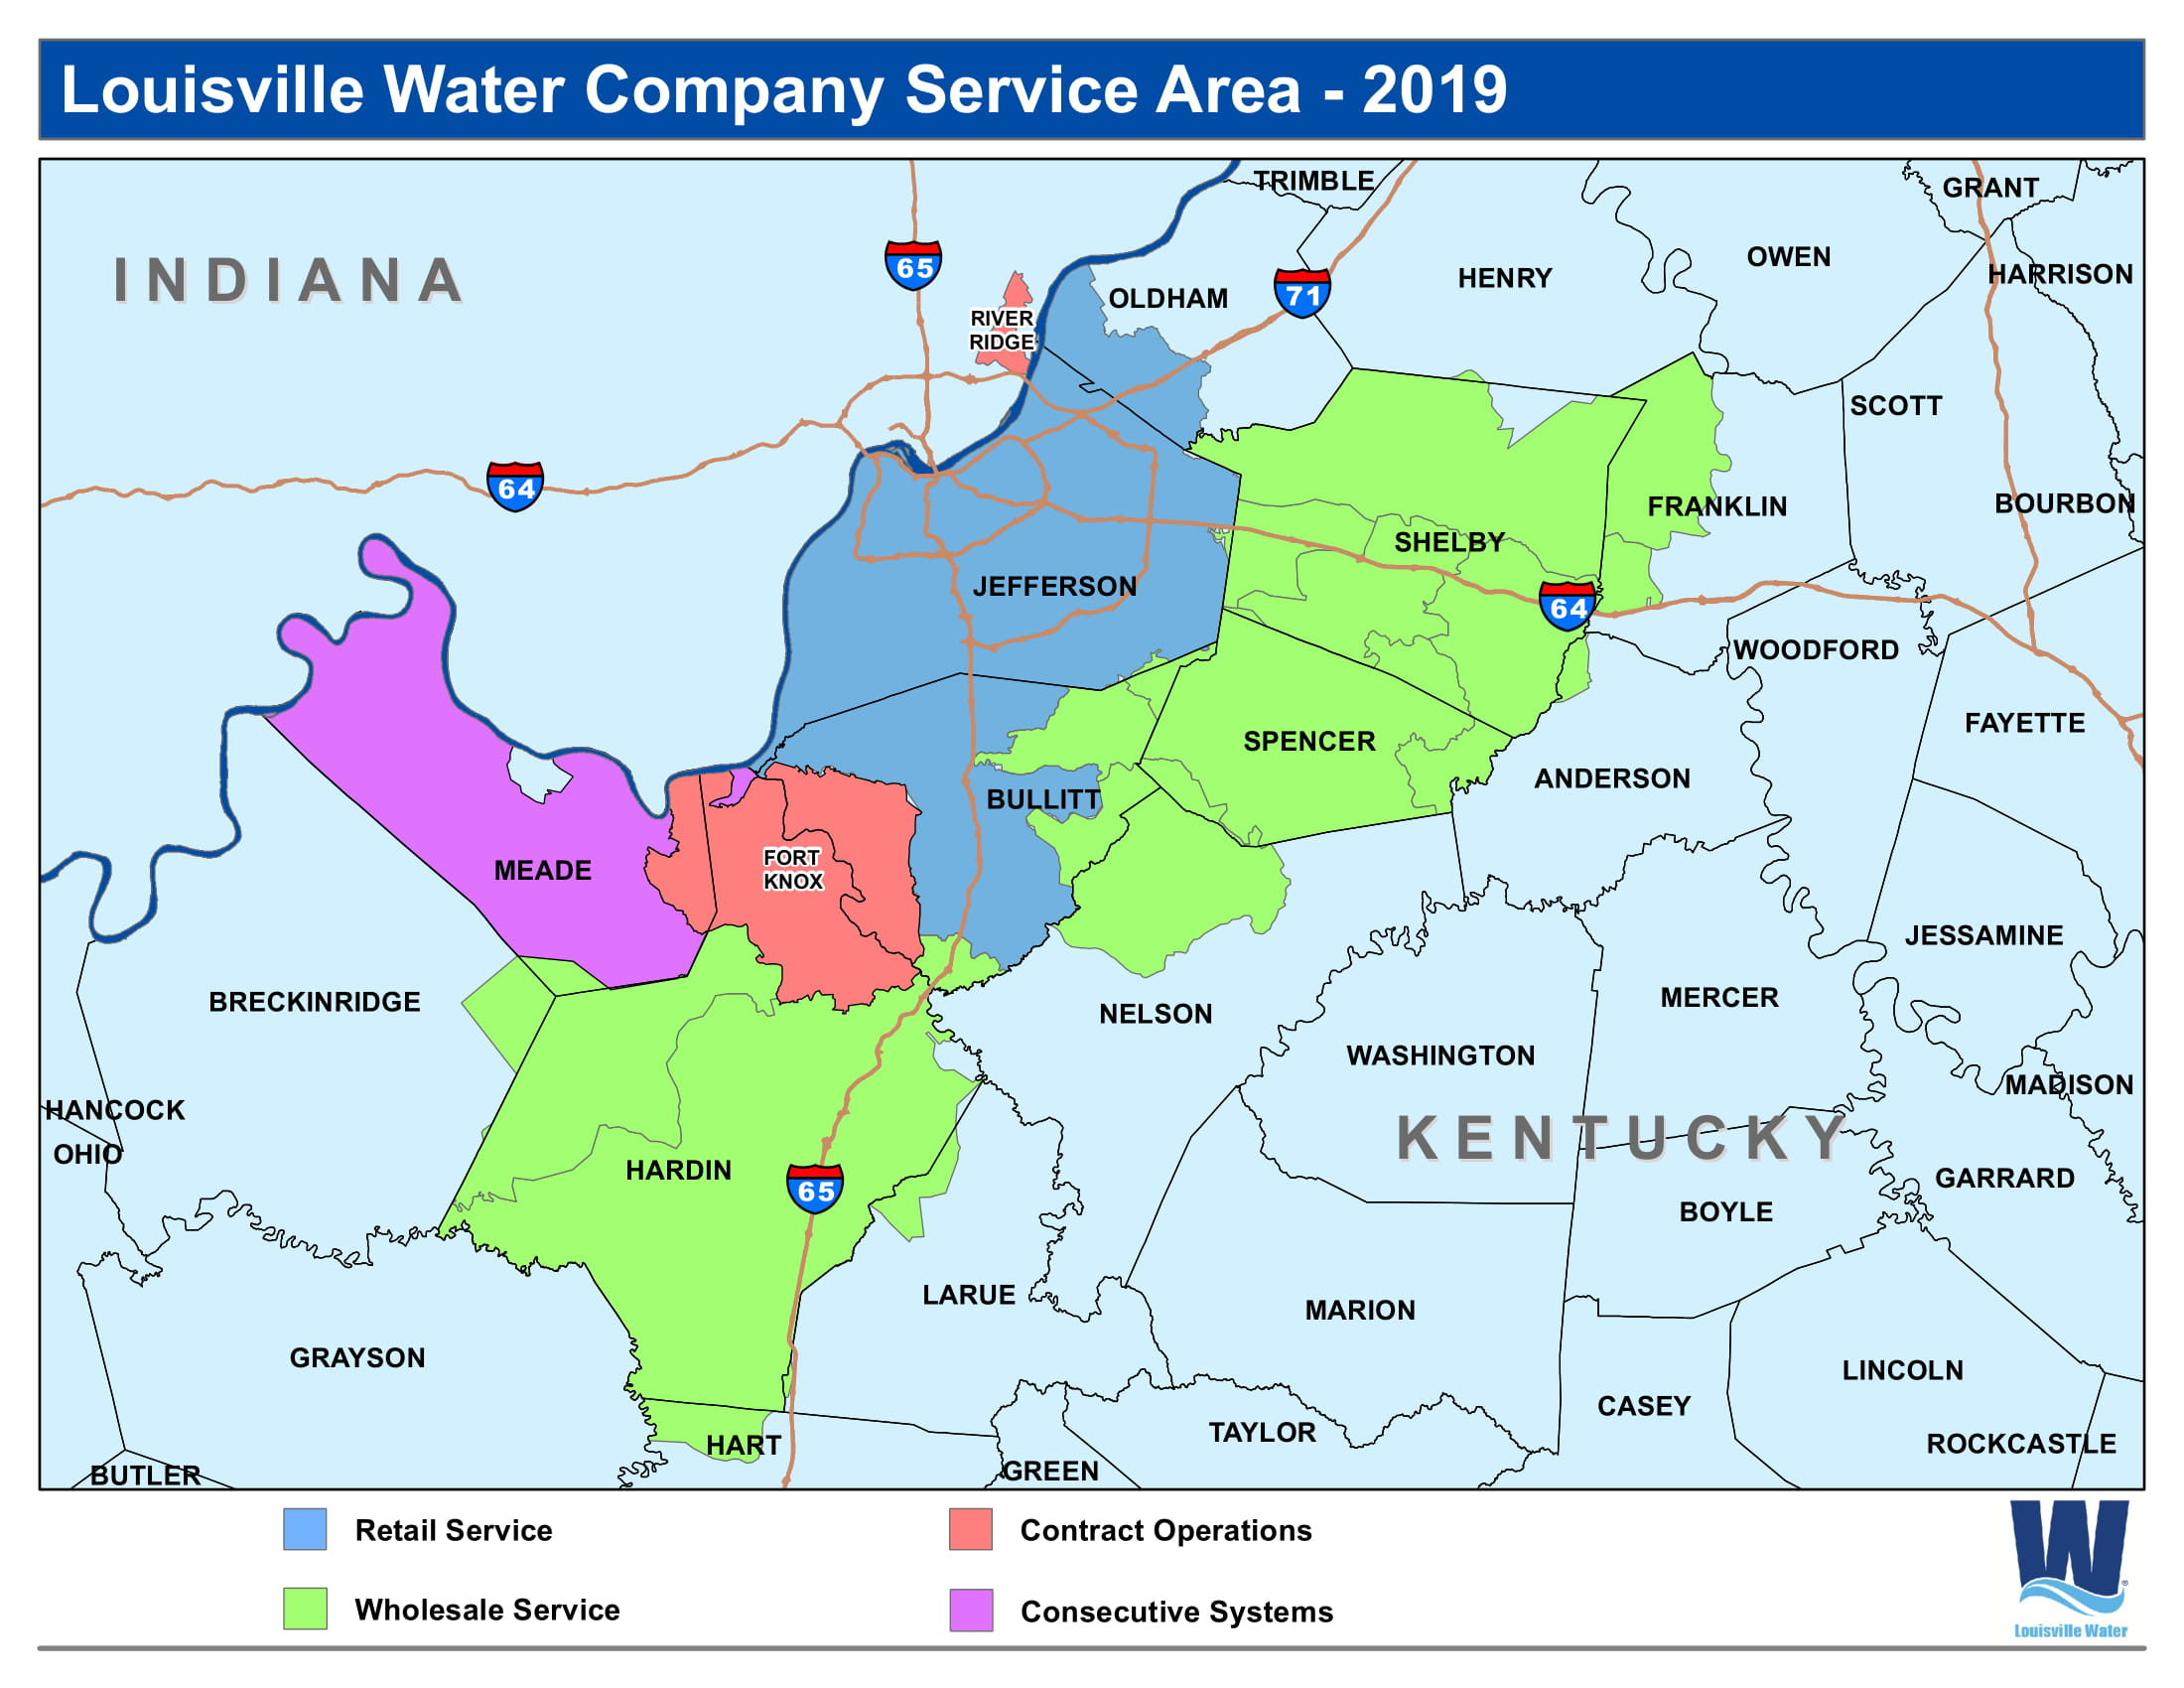 Service area for Louisville Water Company on map of ky, zip code map jefferson county ky, streets in louisville ky, zip code map ashland ky, mandy ward louisville ky, area code map ky, home louisville ky, johnson traditional middle school louisville ky, time zone map louisville ky, counties of louisville ky, underground zip line louisville ky, weather louisville ky, zip code map bowling green ky, 64 louisville ky, highway map louisville ky, zip code map fayette county ky, traffic louisville ky, topographical map louisville ky, affluent neighborhoods in louisville ky, elevation map louisville ky,